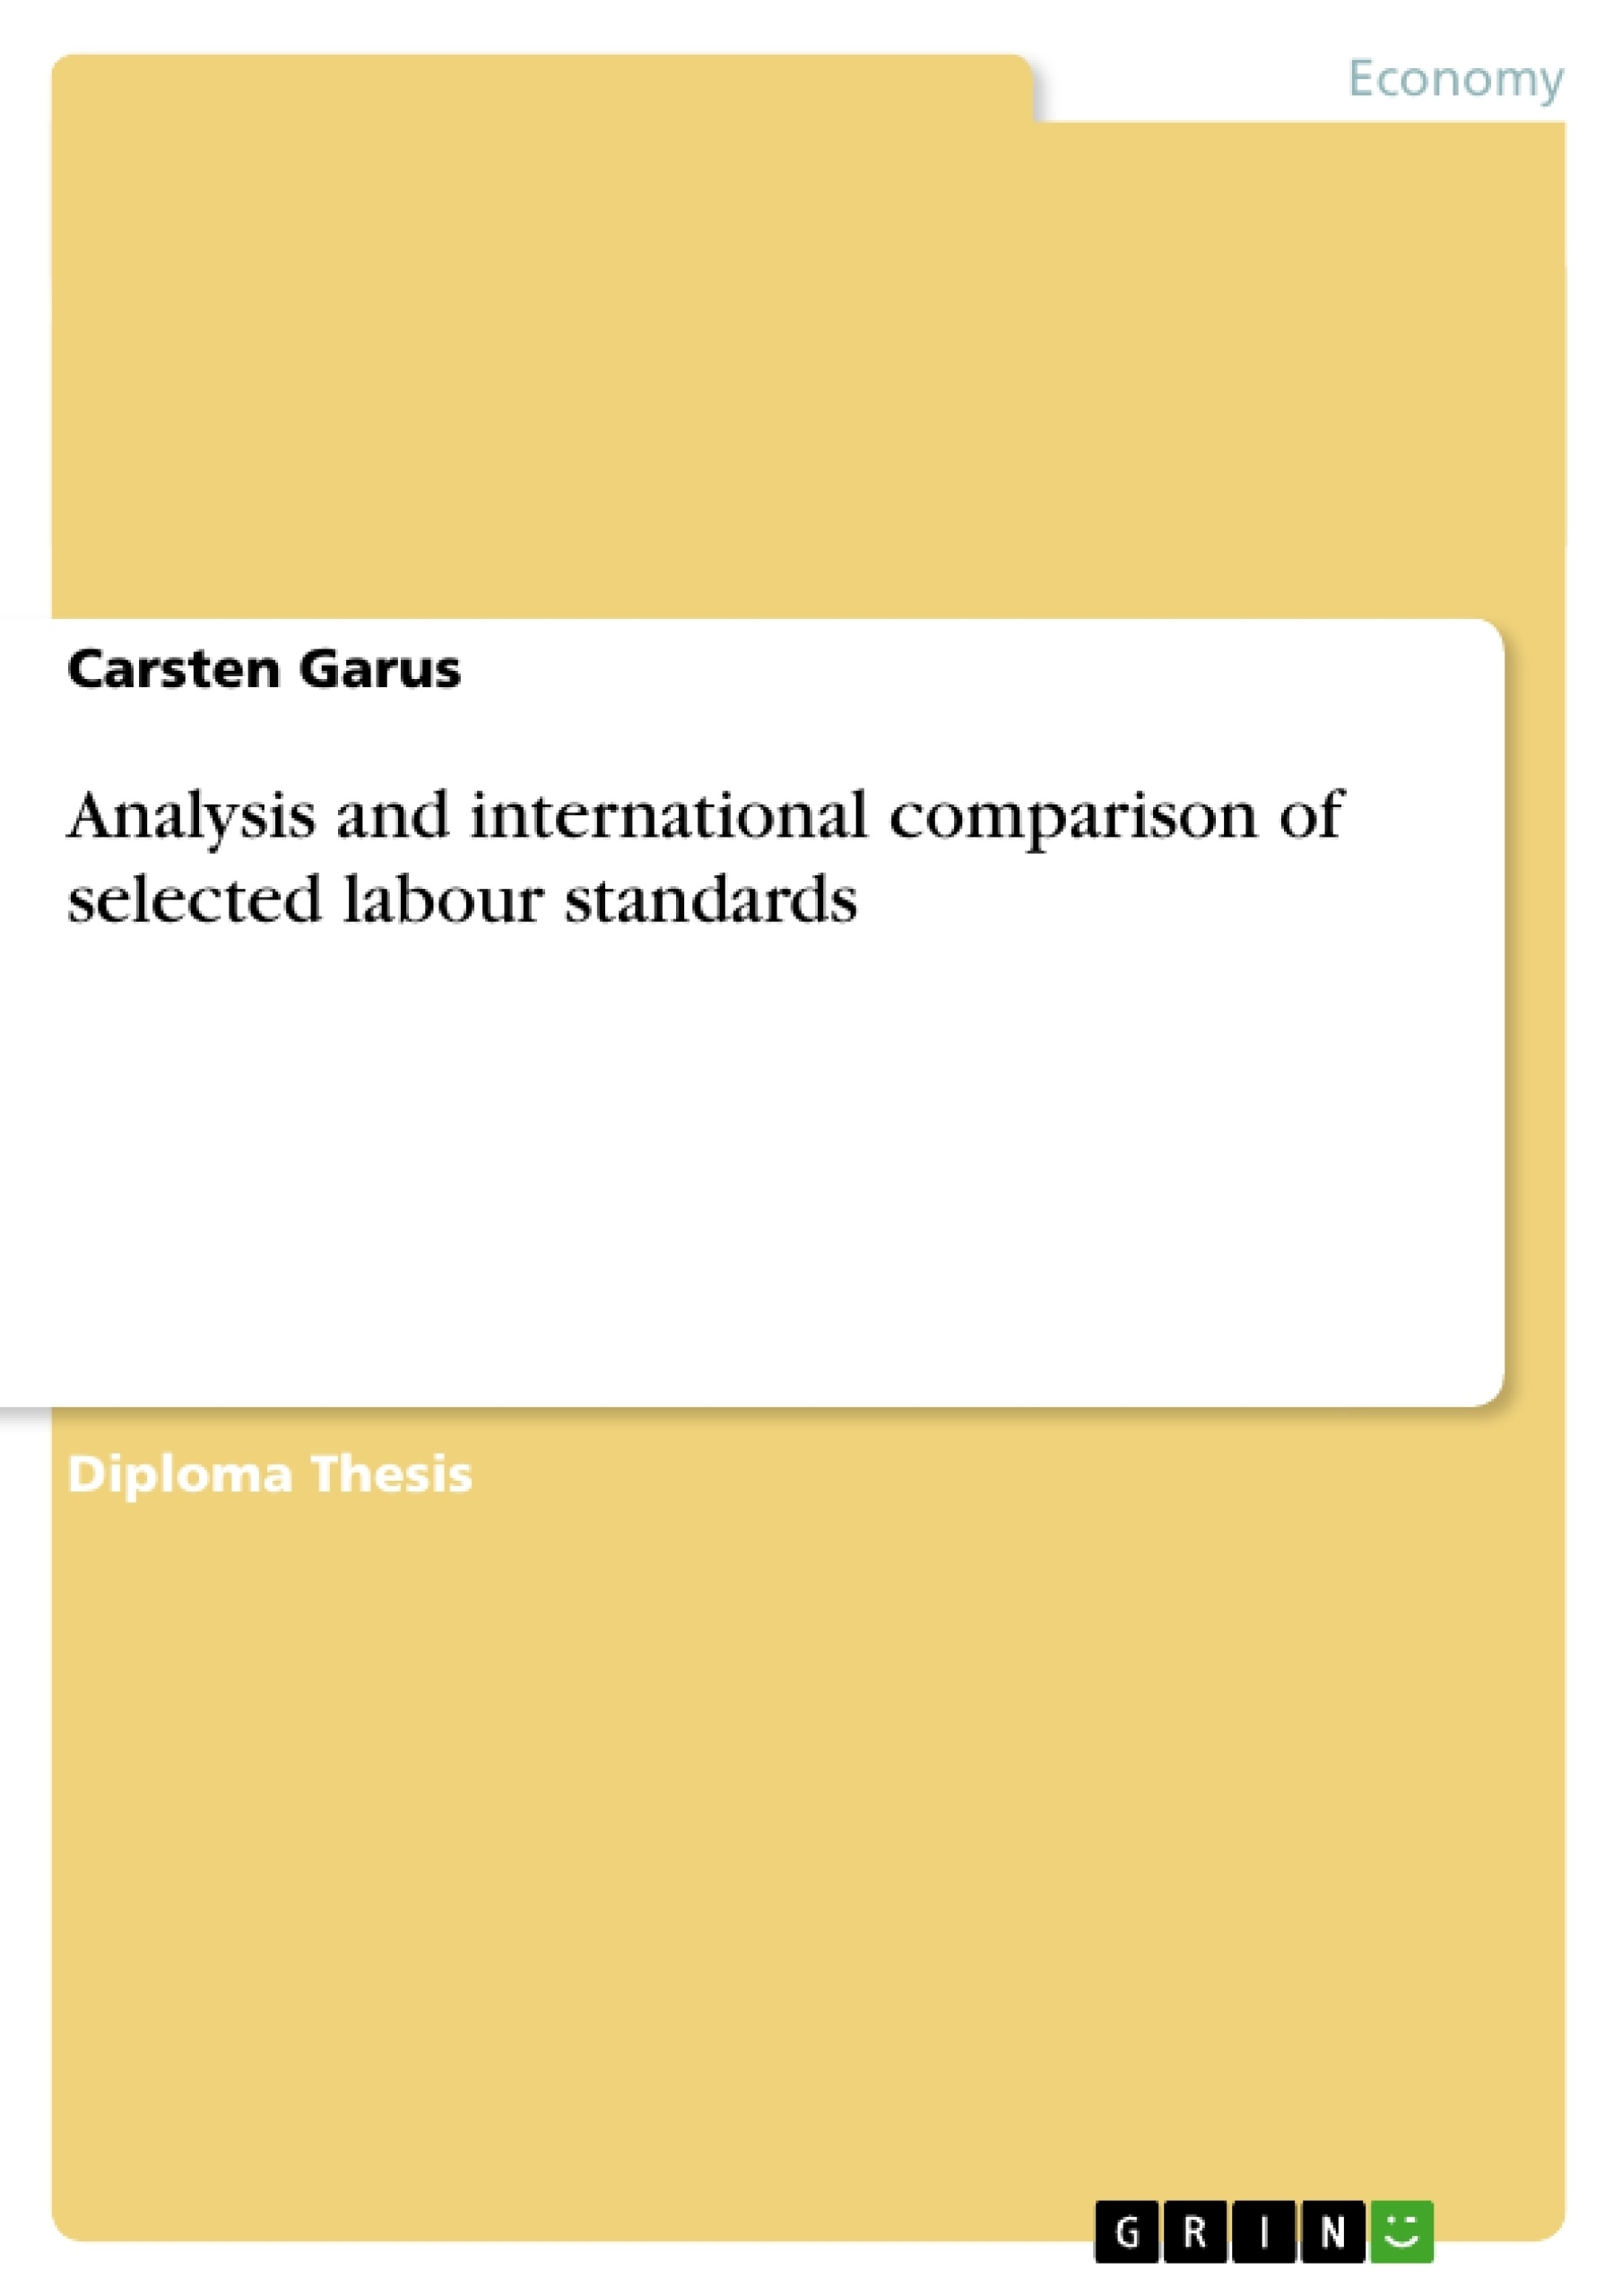 Title: Analysis and international comparison of selected labour standards